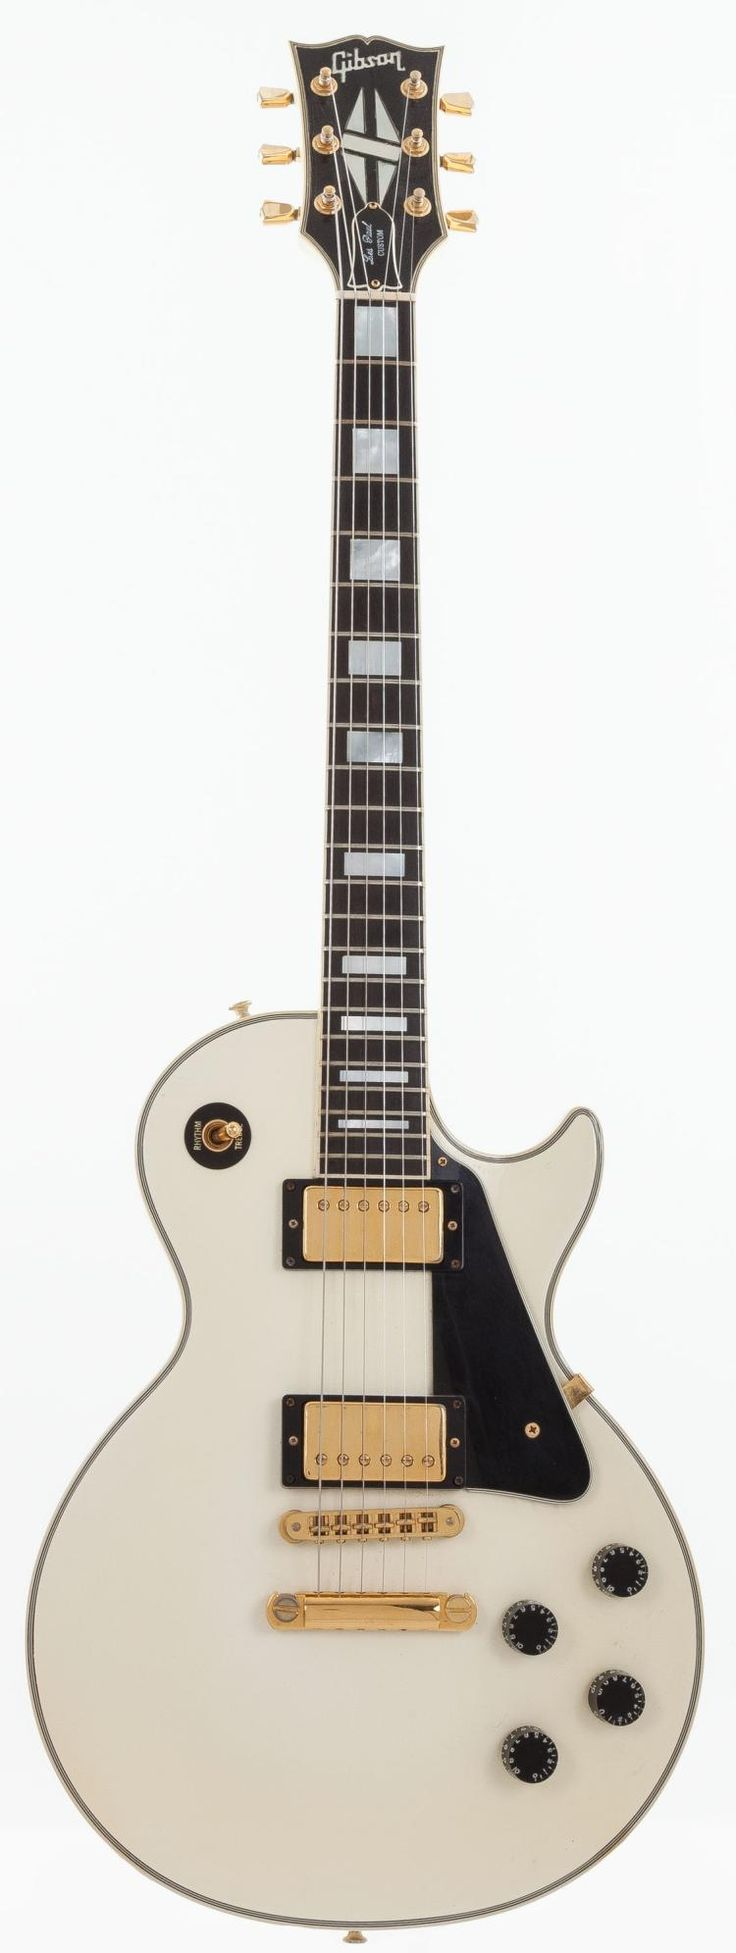 1990 Gibson Les Paul Custom White Solid Body Elect - by Heritage Auctions